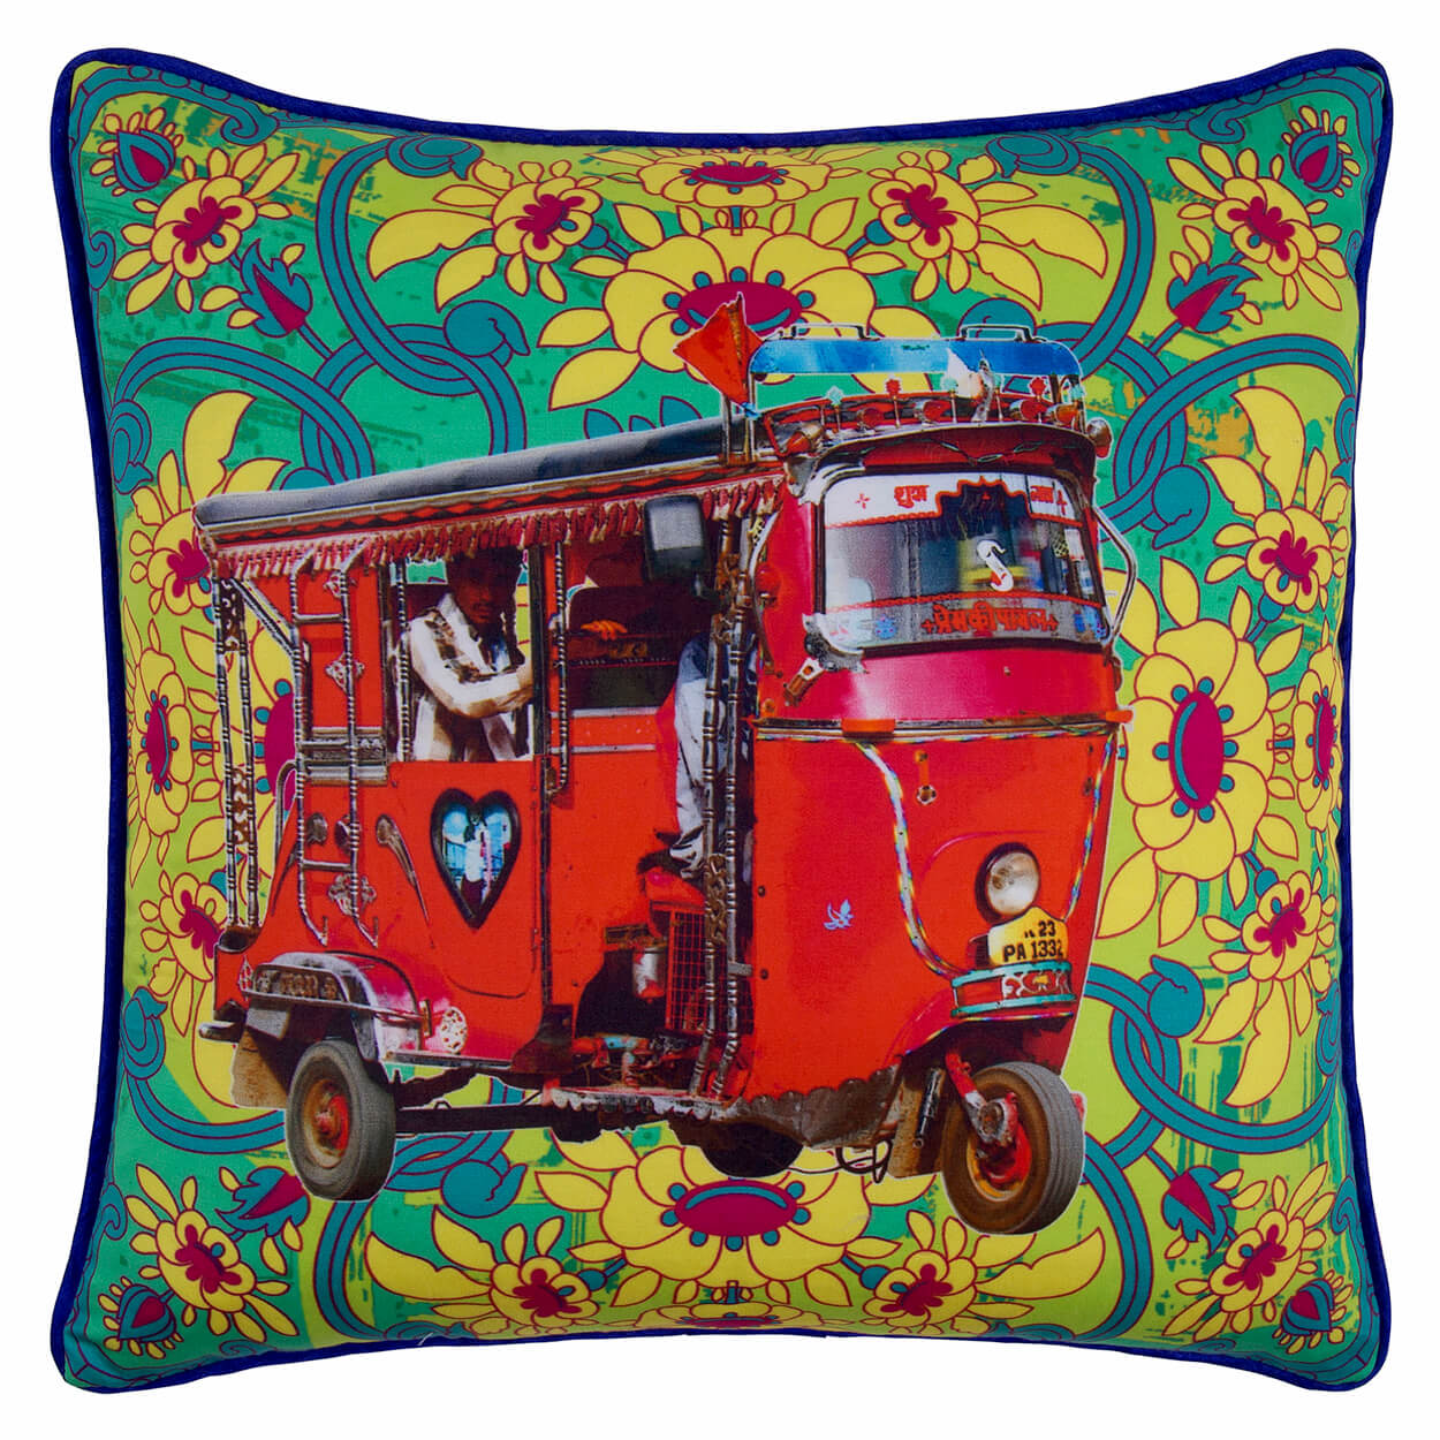 Lal Auto Rickshaw Glaze Cotton Cushion Cover 16x16 Inches